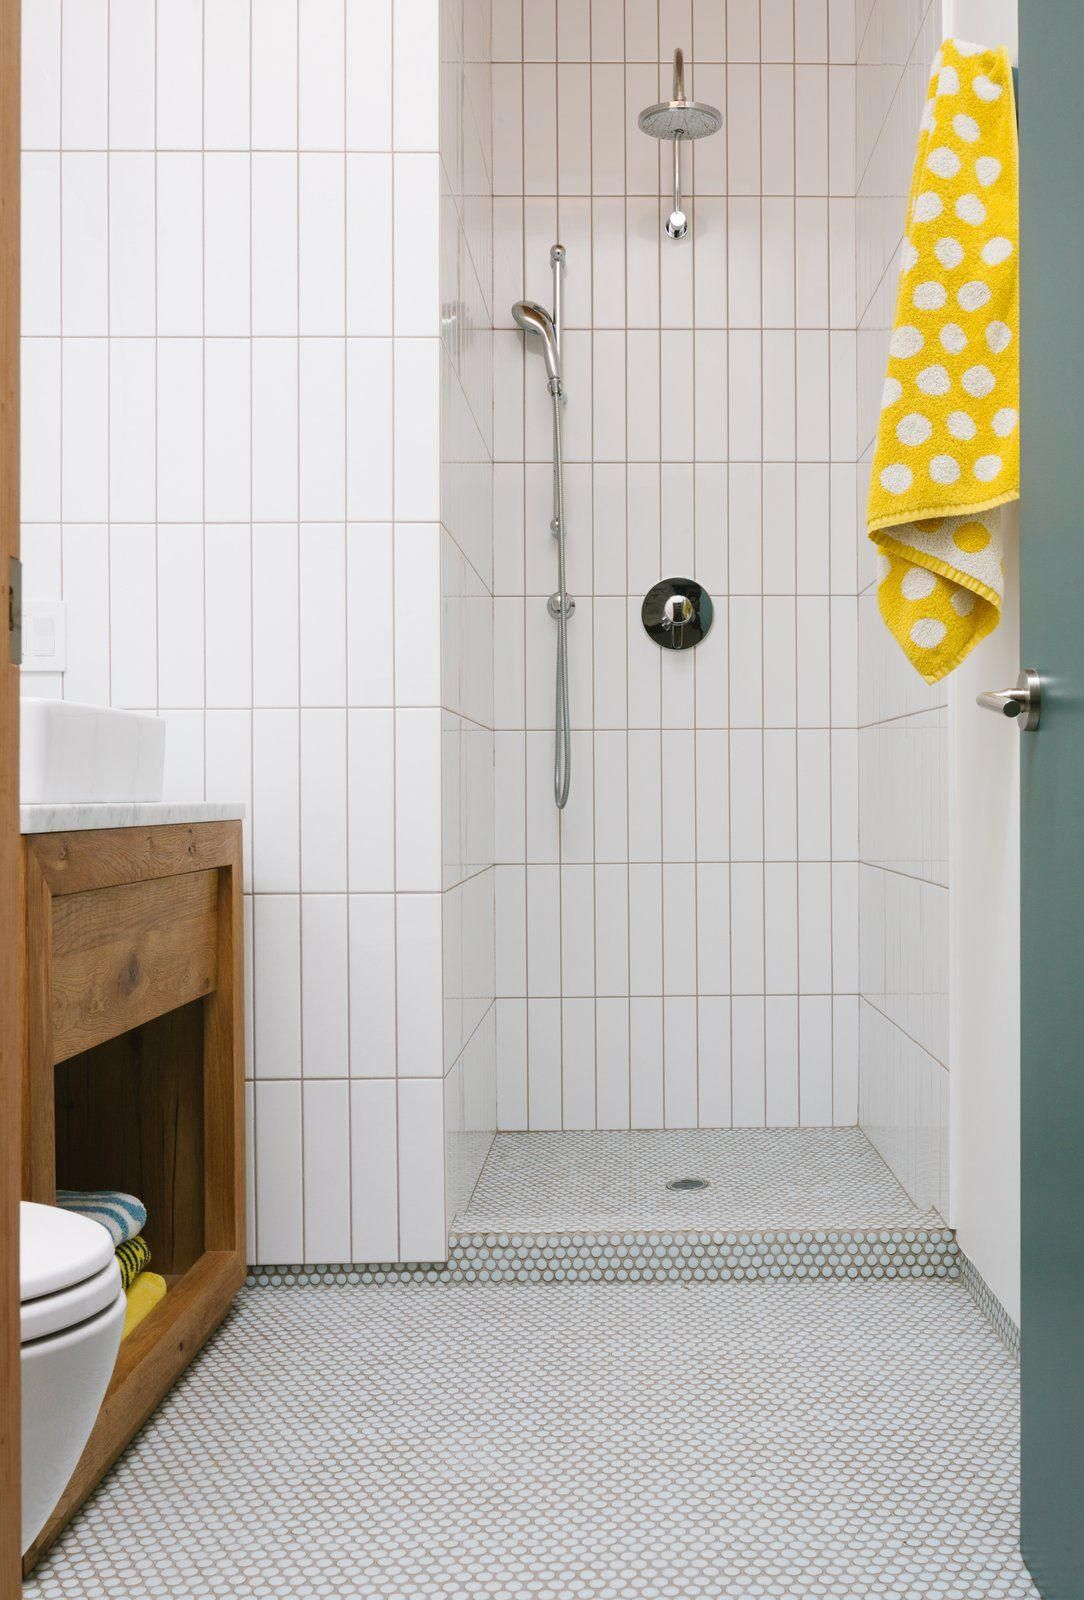 6 Tips For Optimizing Toilets With Images Penny Tiles Bathroom